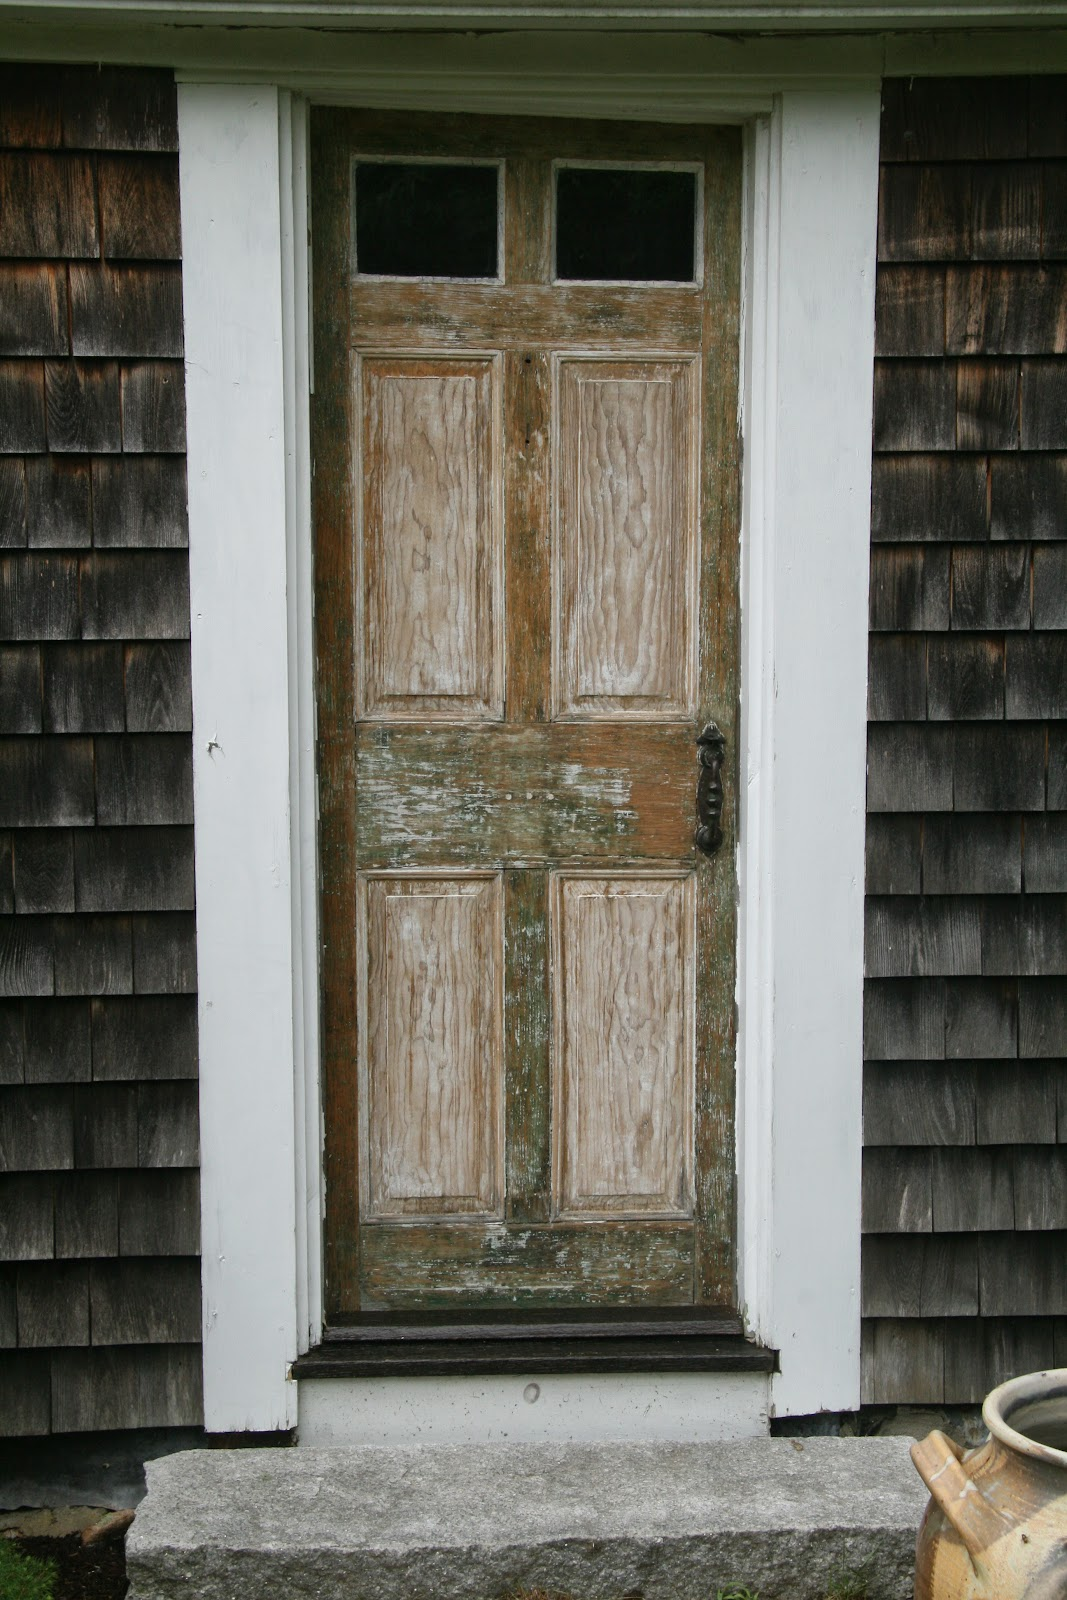 Restoring An Antique Front Door - An Old Farm: Restoring An Antique Front Door